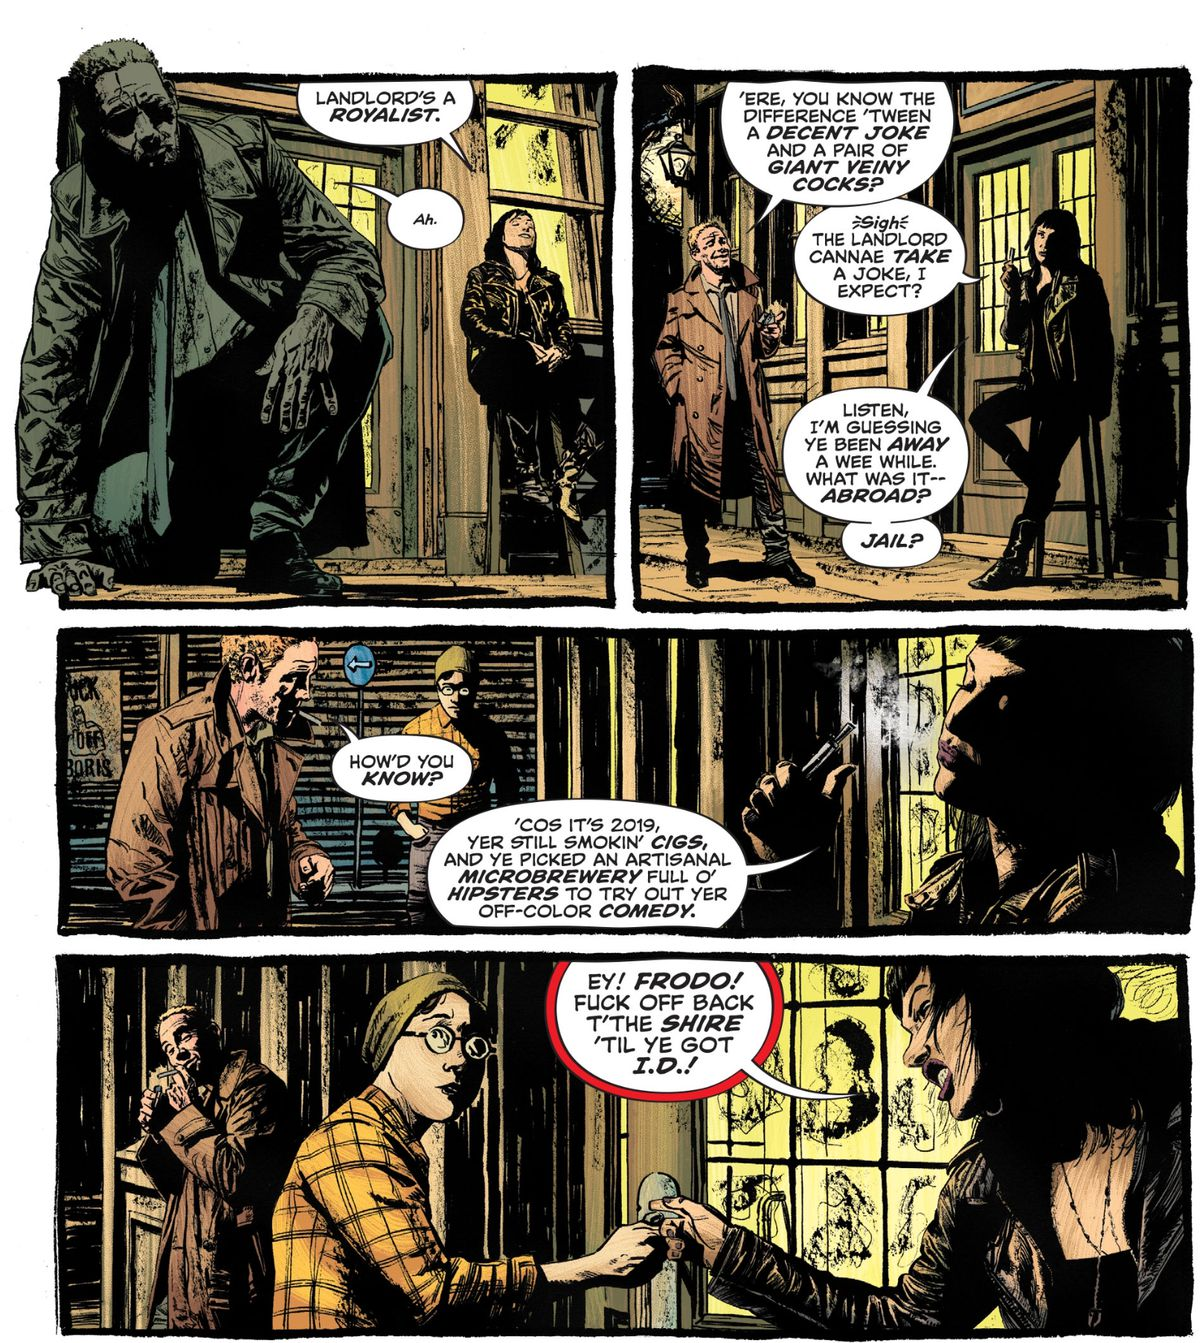 The bouncer of the bar John Constantine was just thrown out of needles him about being unable to read the room, in John Constantine: Hellblazer #1, DC Comics (2019).